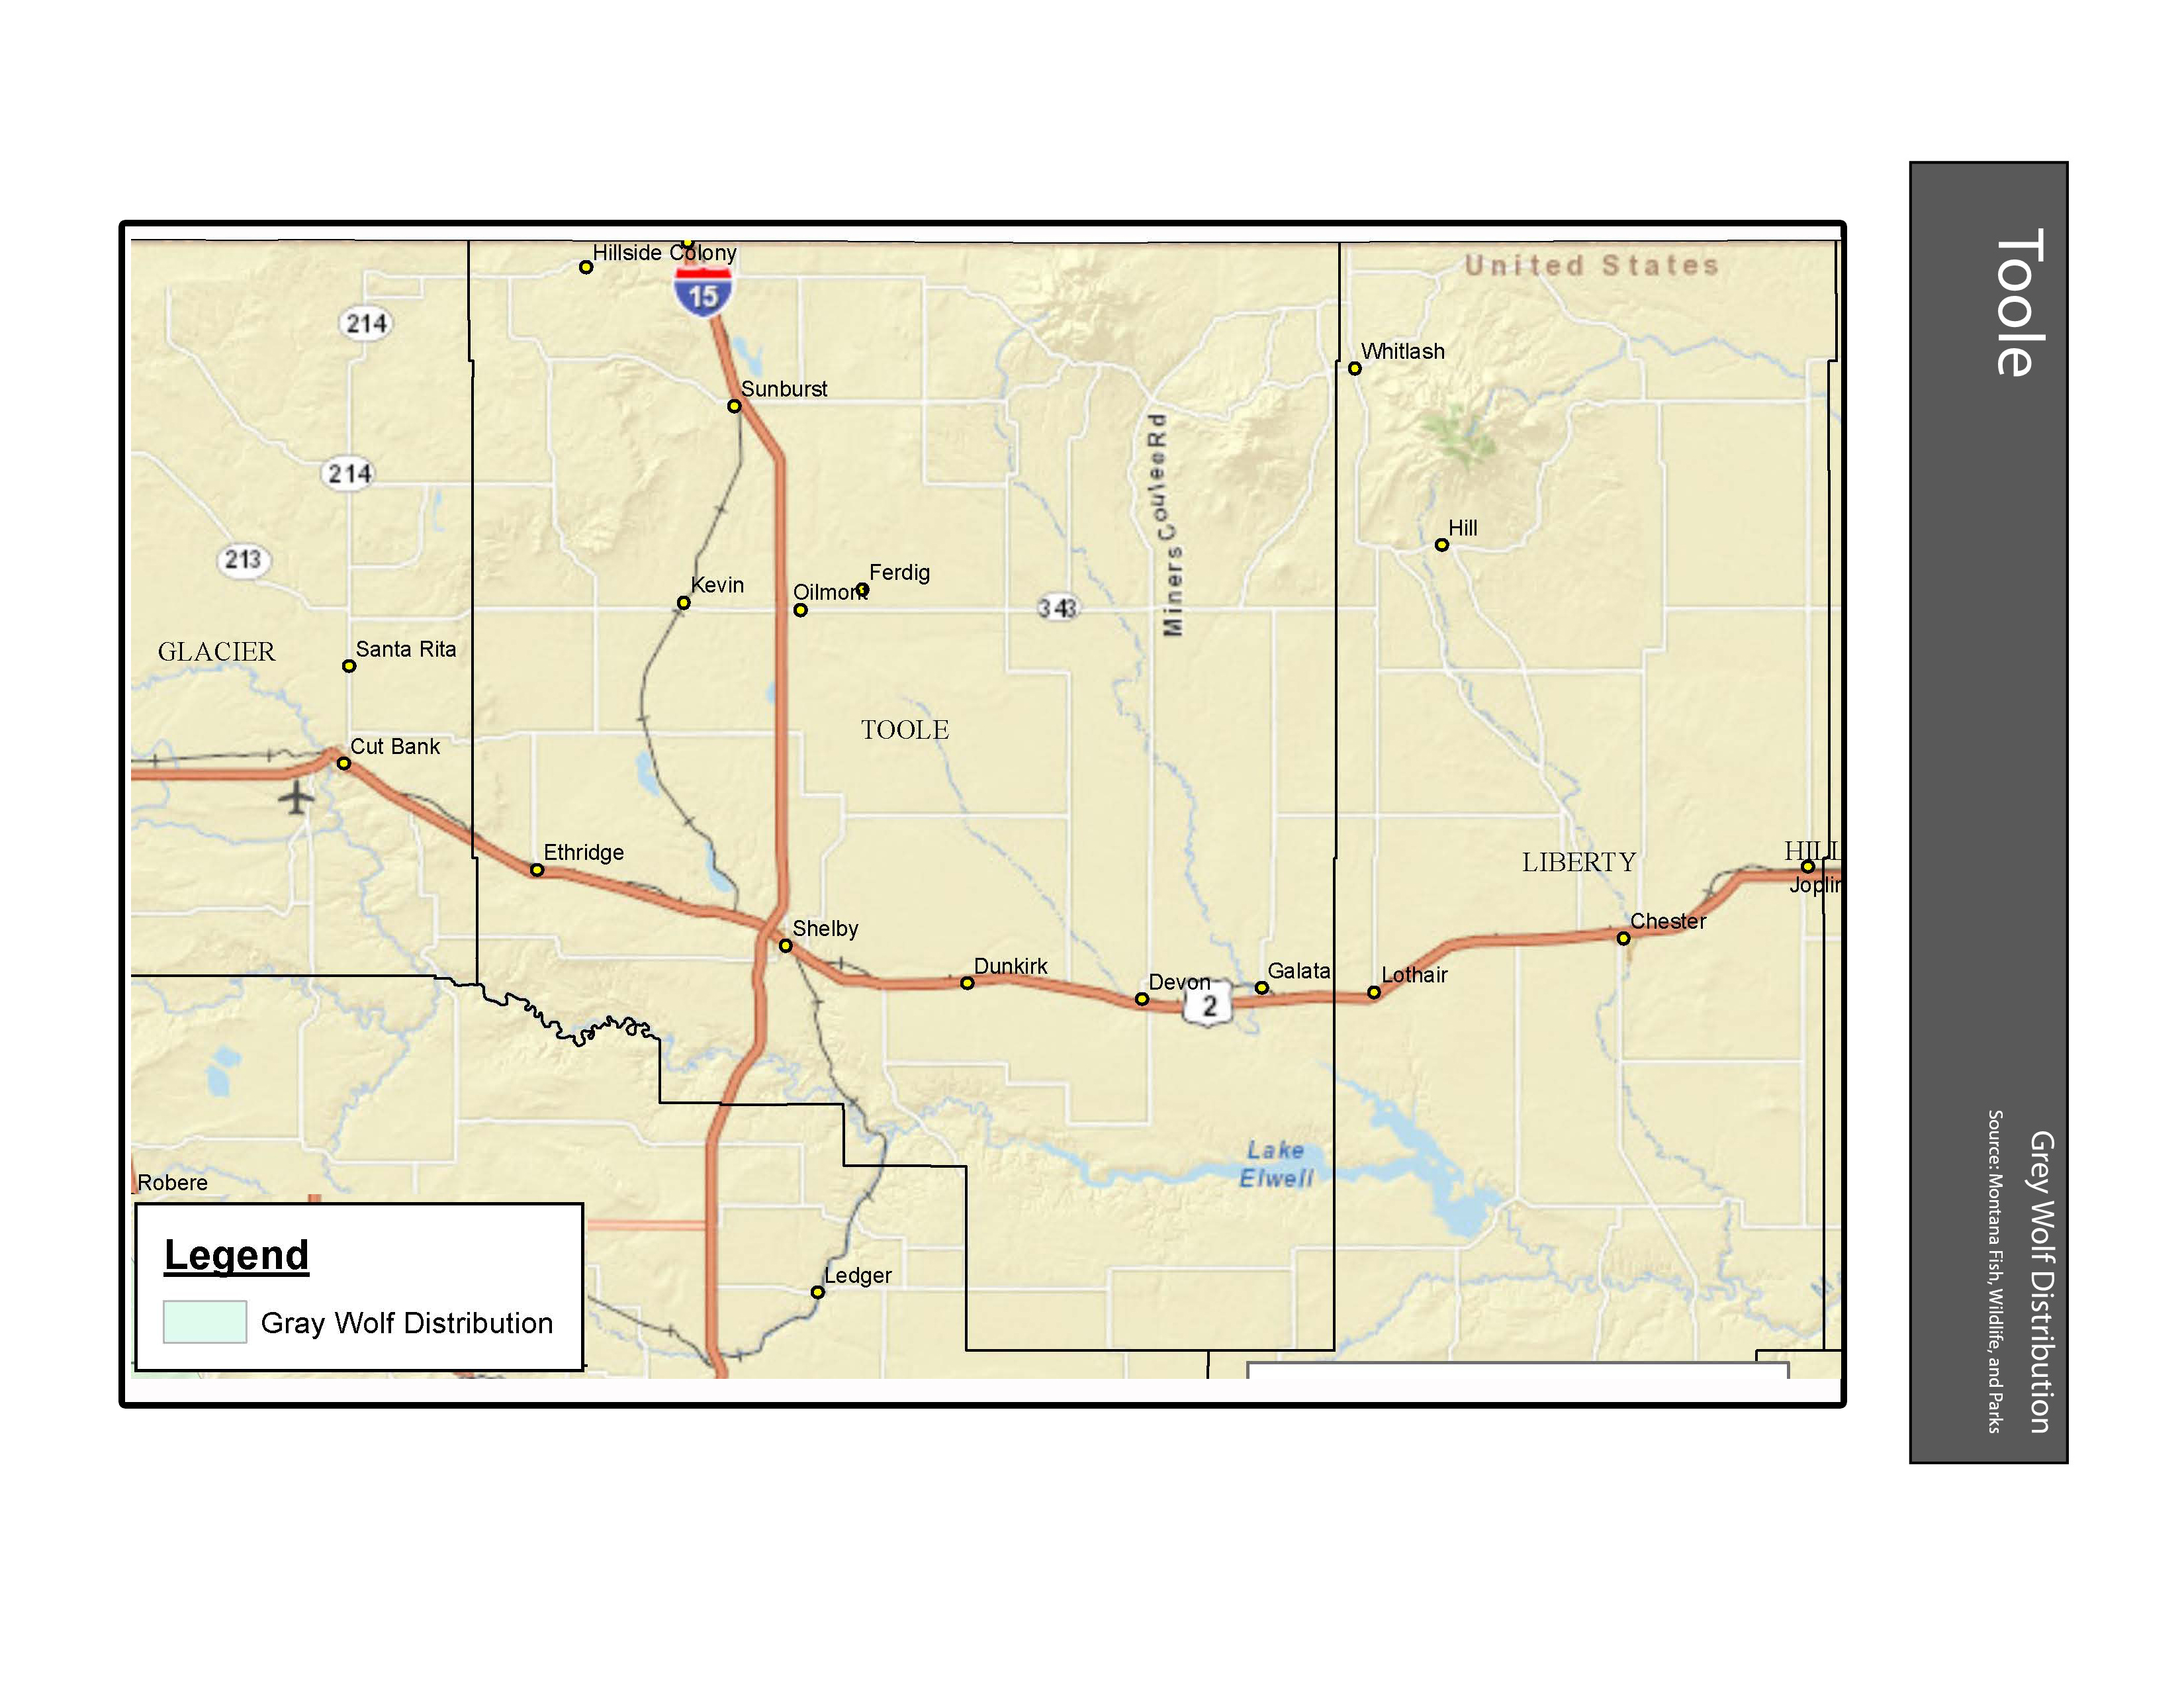 Gray Wolf Distribution Toole County